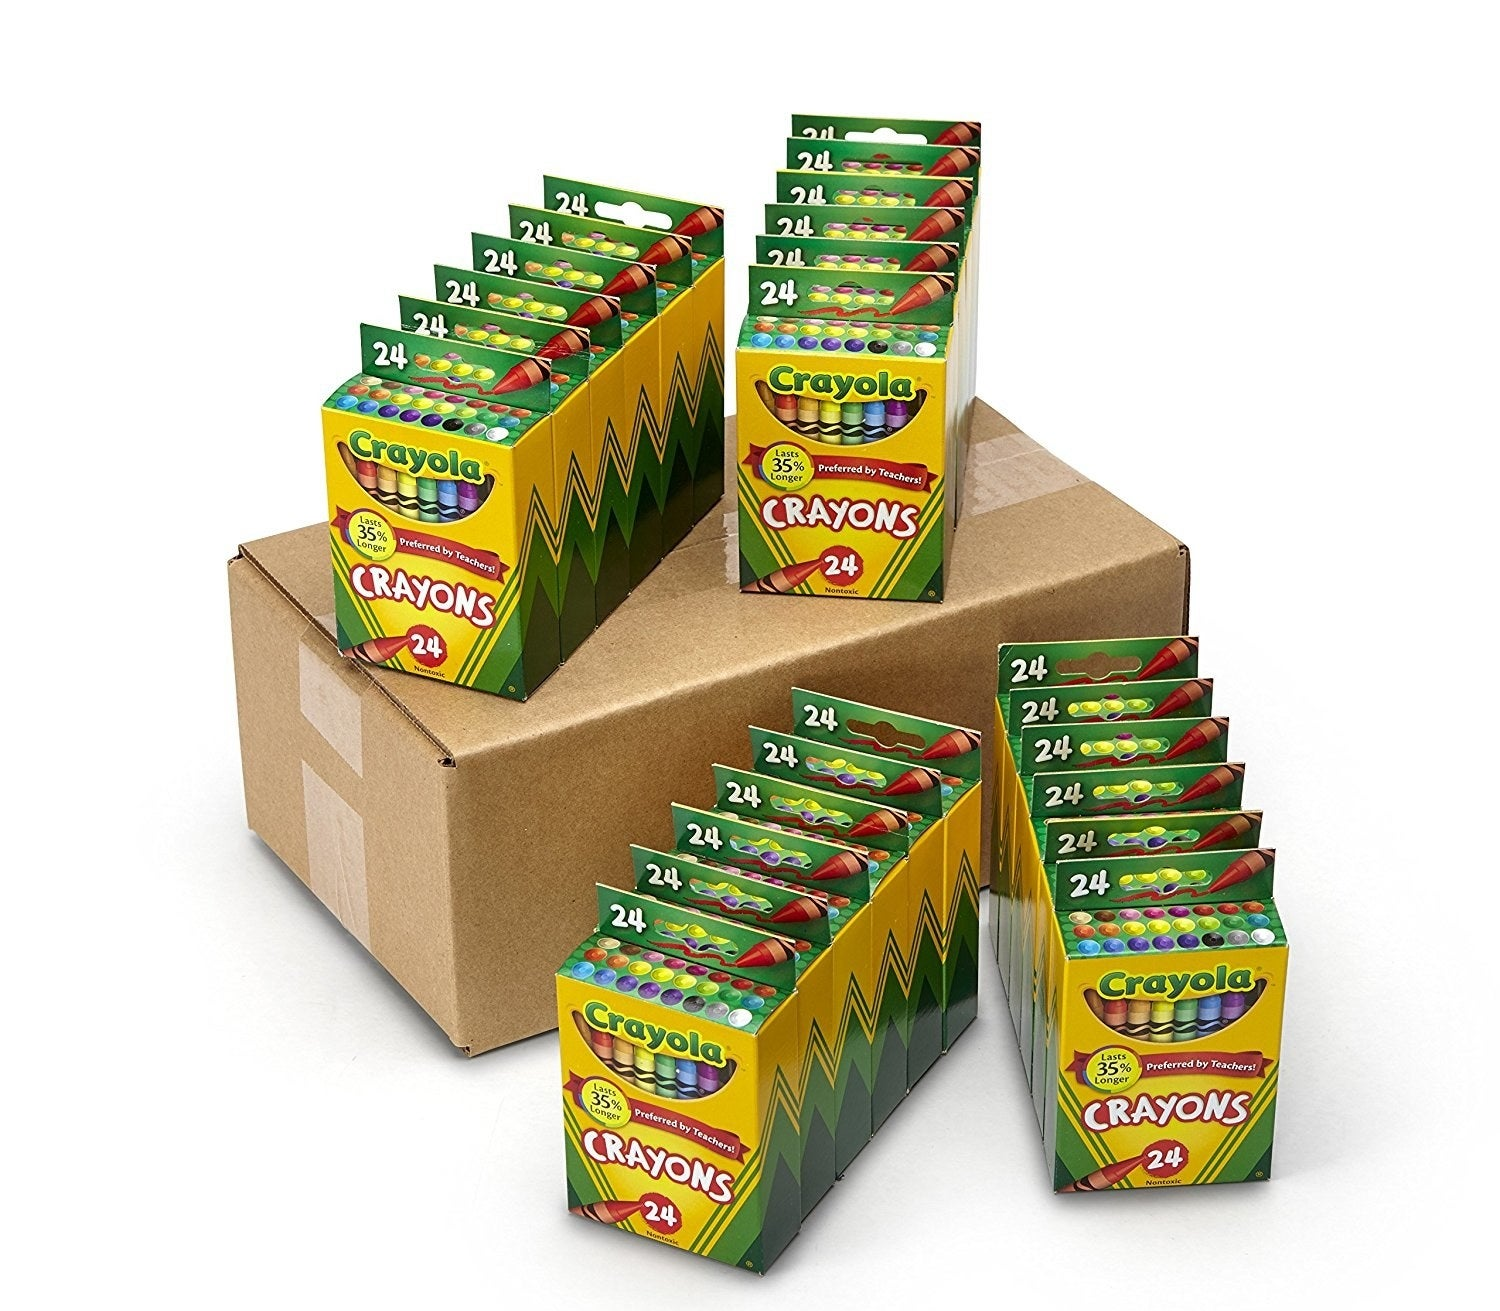 Each pack contains 24 crayons, for a total of 576 crayons.Get them for $29.46 ($7.53 off the list price).